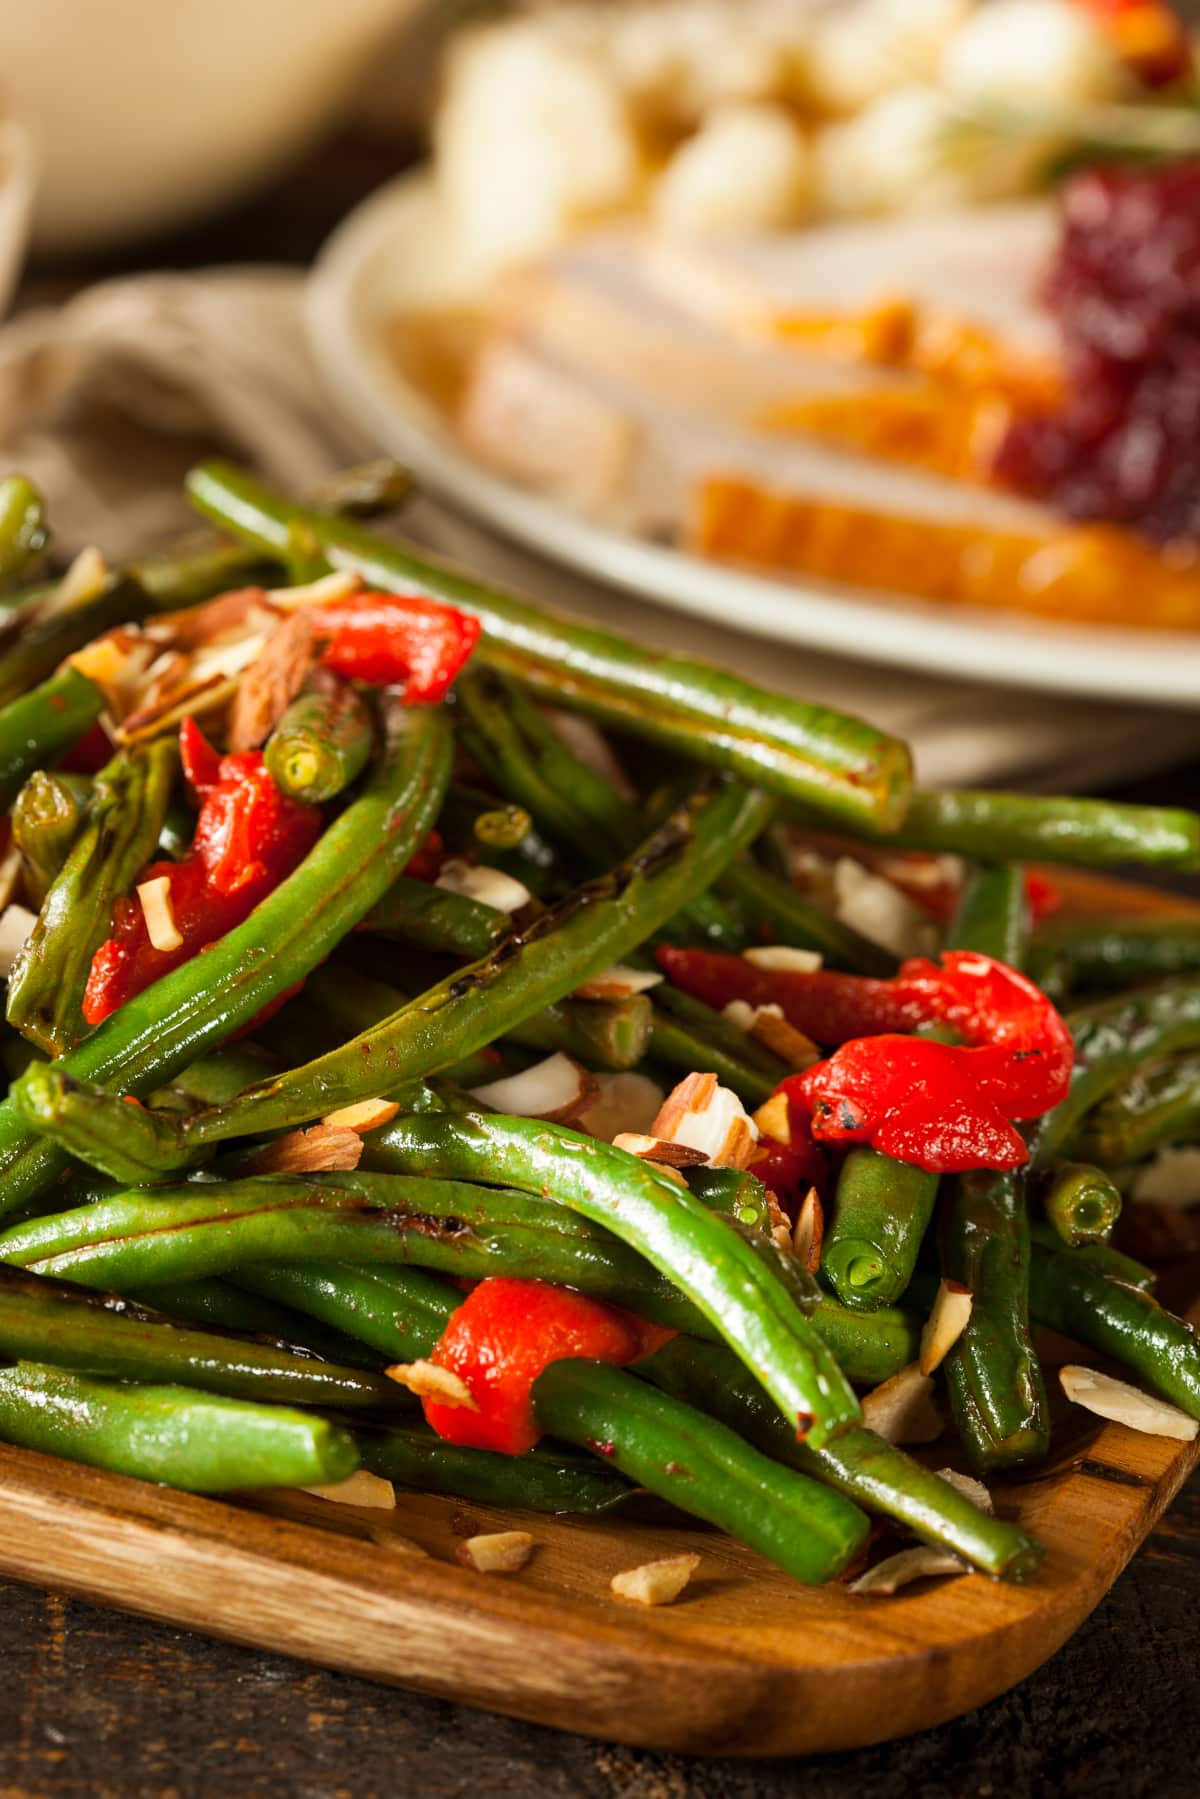 Instant Pot green beans with pimentos, slivered almond and garlic served as a side dish. Instant Pot green beans are an easy Holiday side dish.